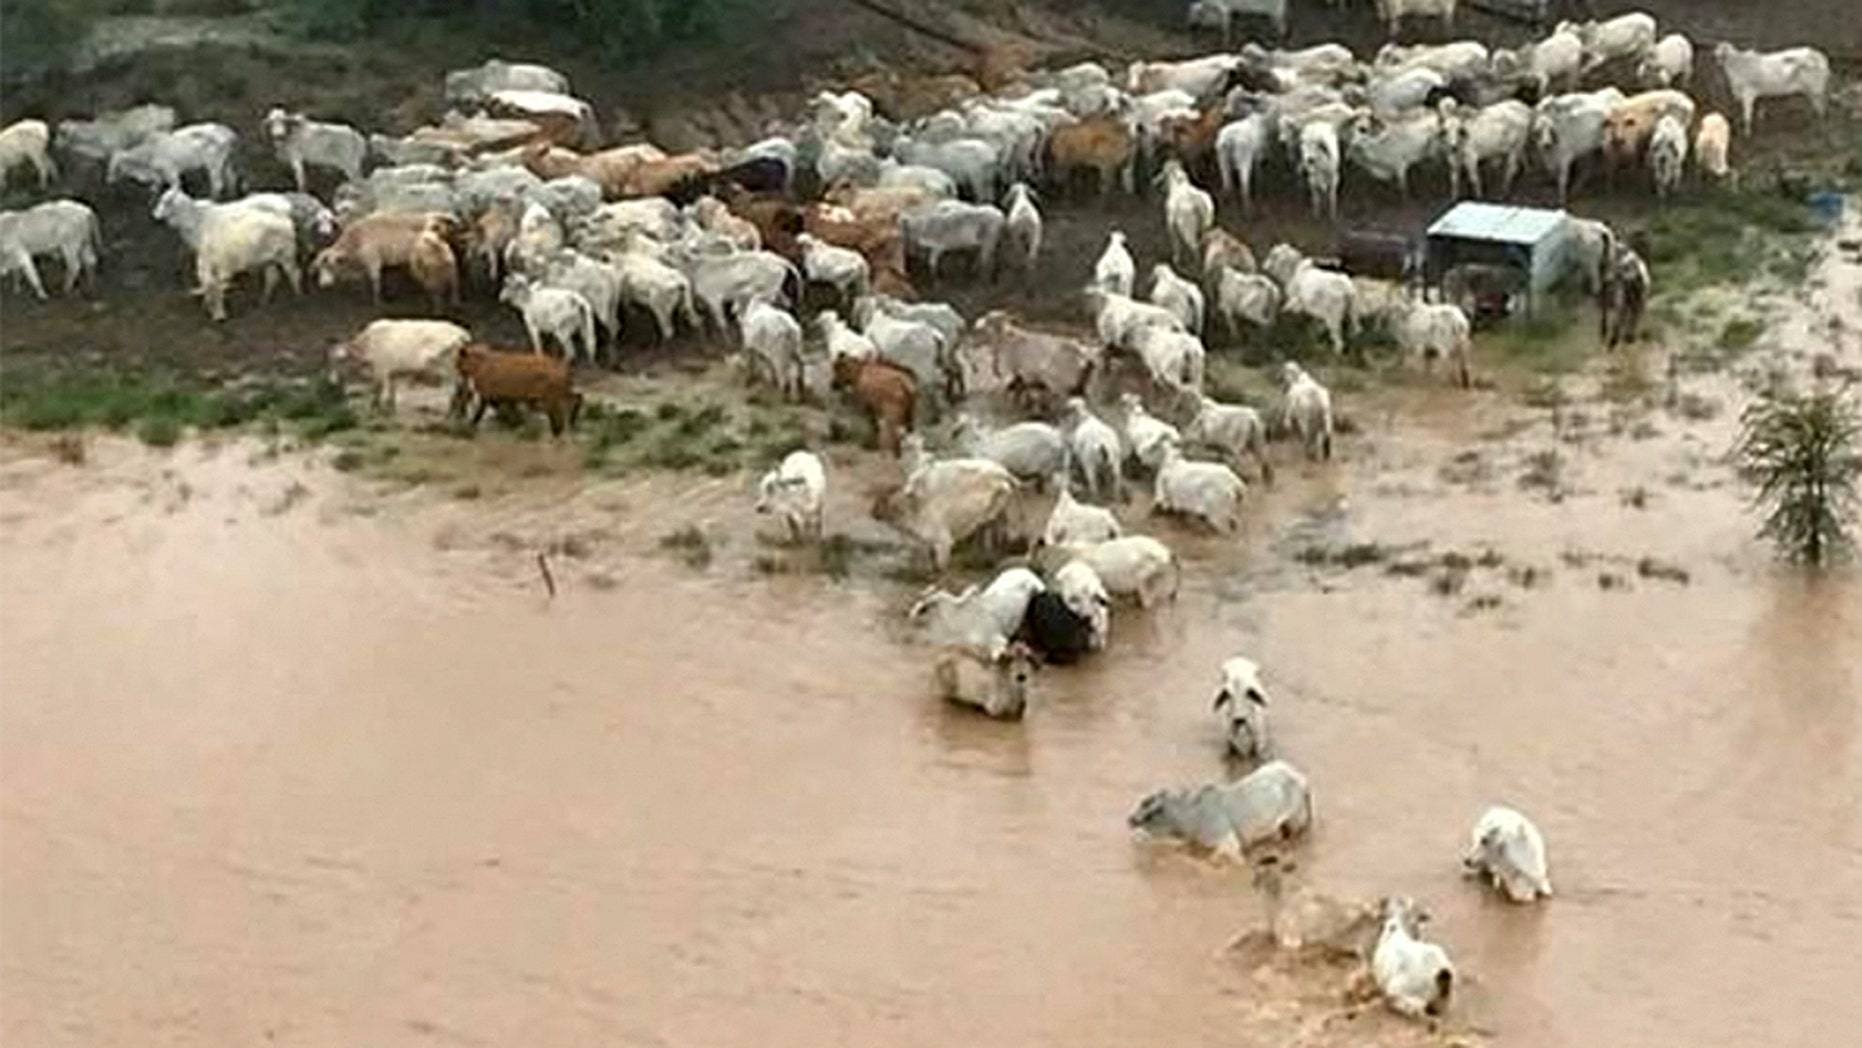 Stranded cows are seen surrounded by floodwater in Queensland, Australia February 5, 2019 in this still picture obtained from social media on February 8, 2019.